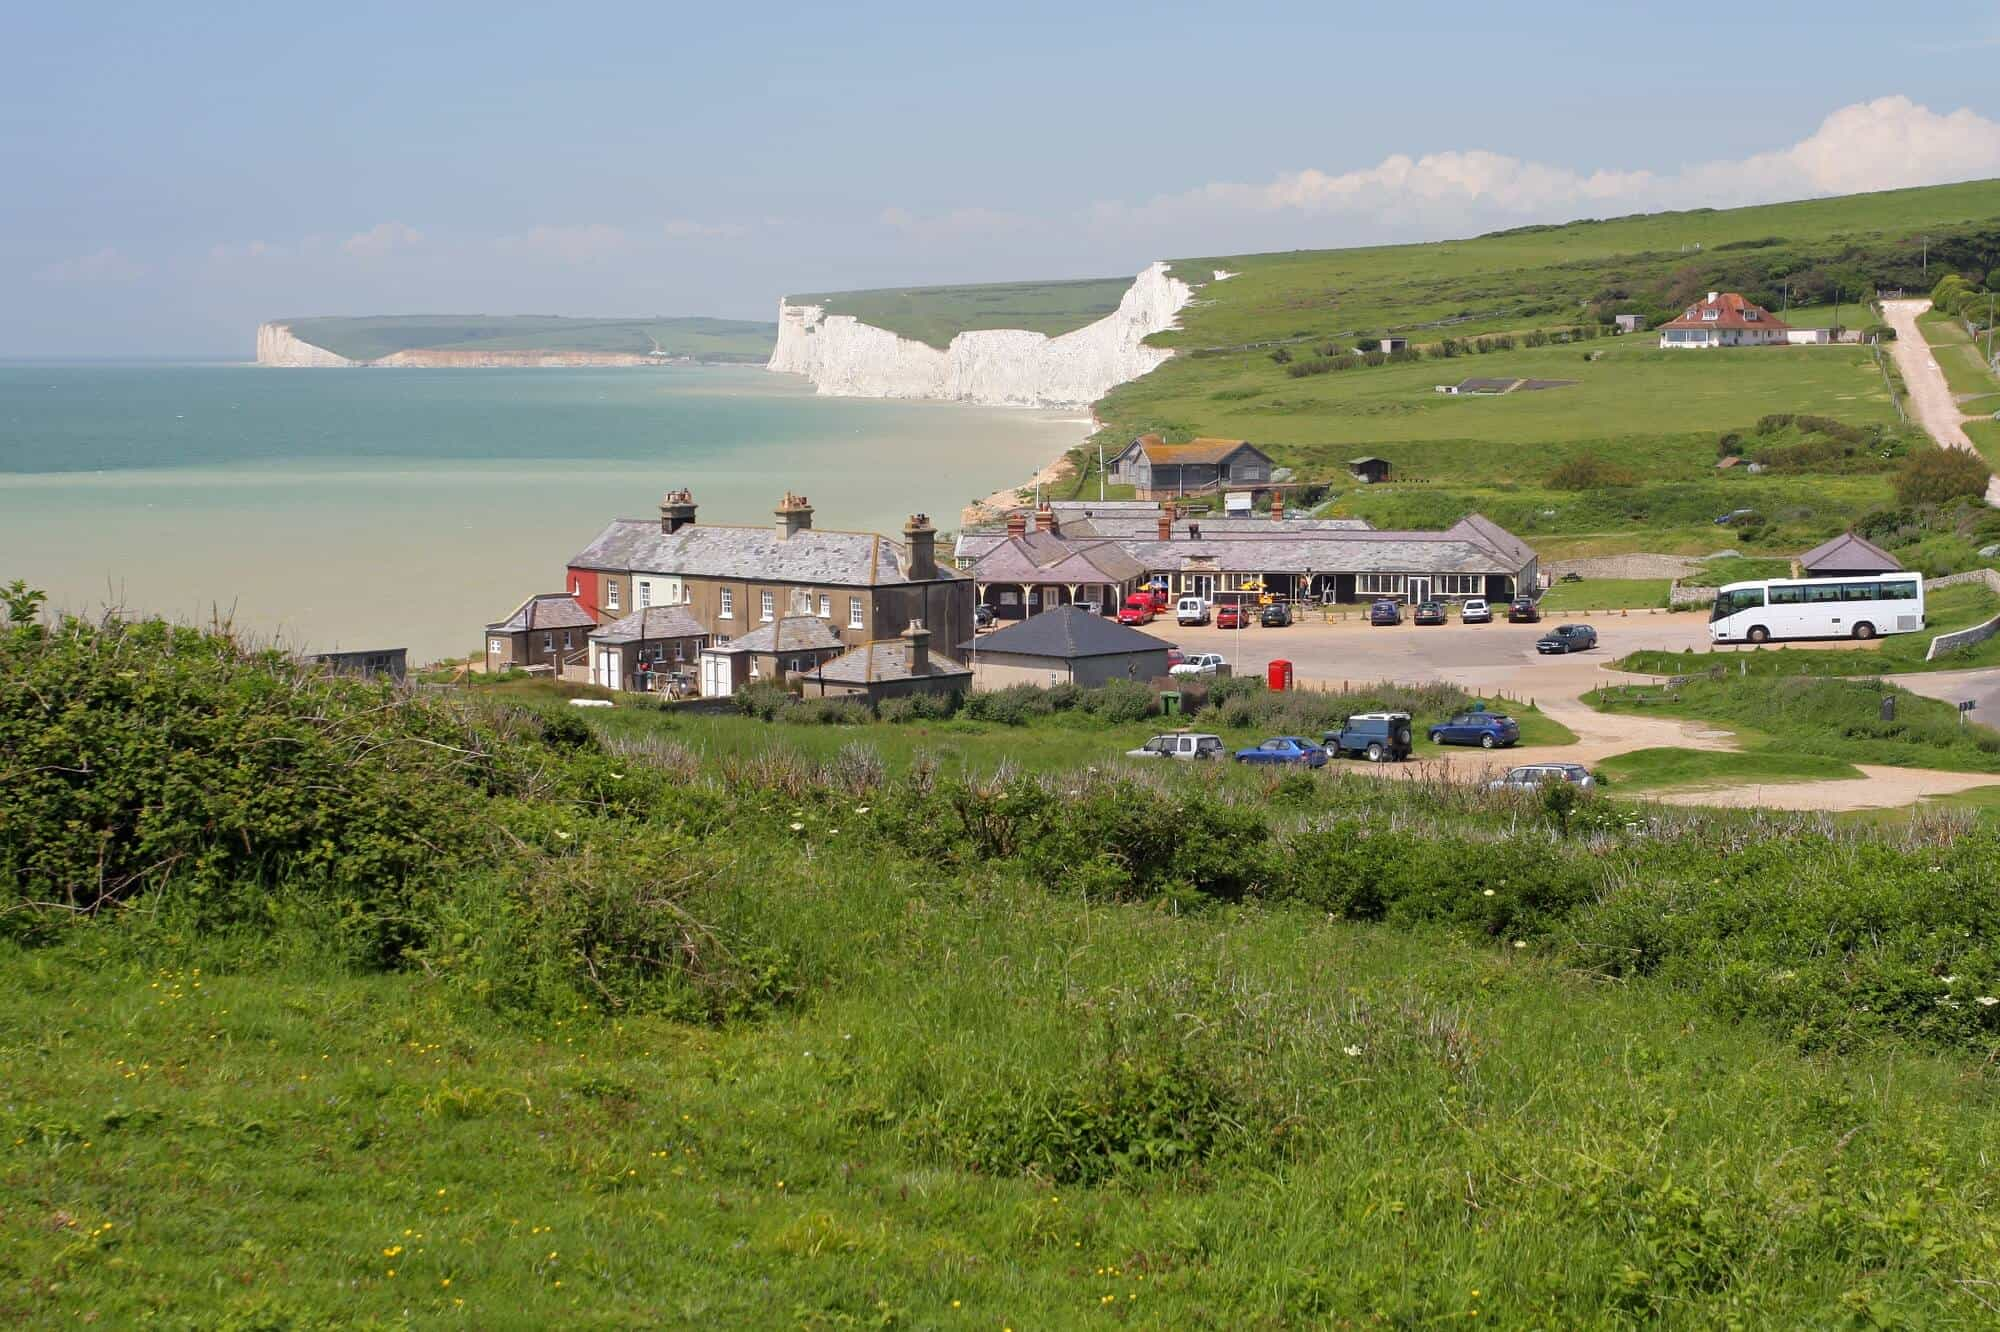 Birling Gap on the South Downs Way